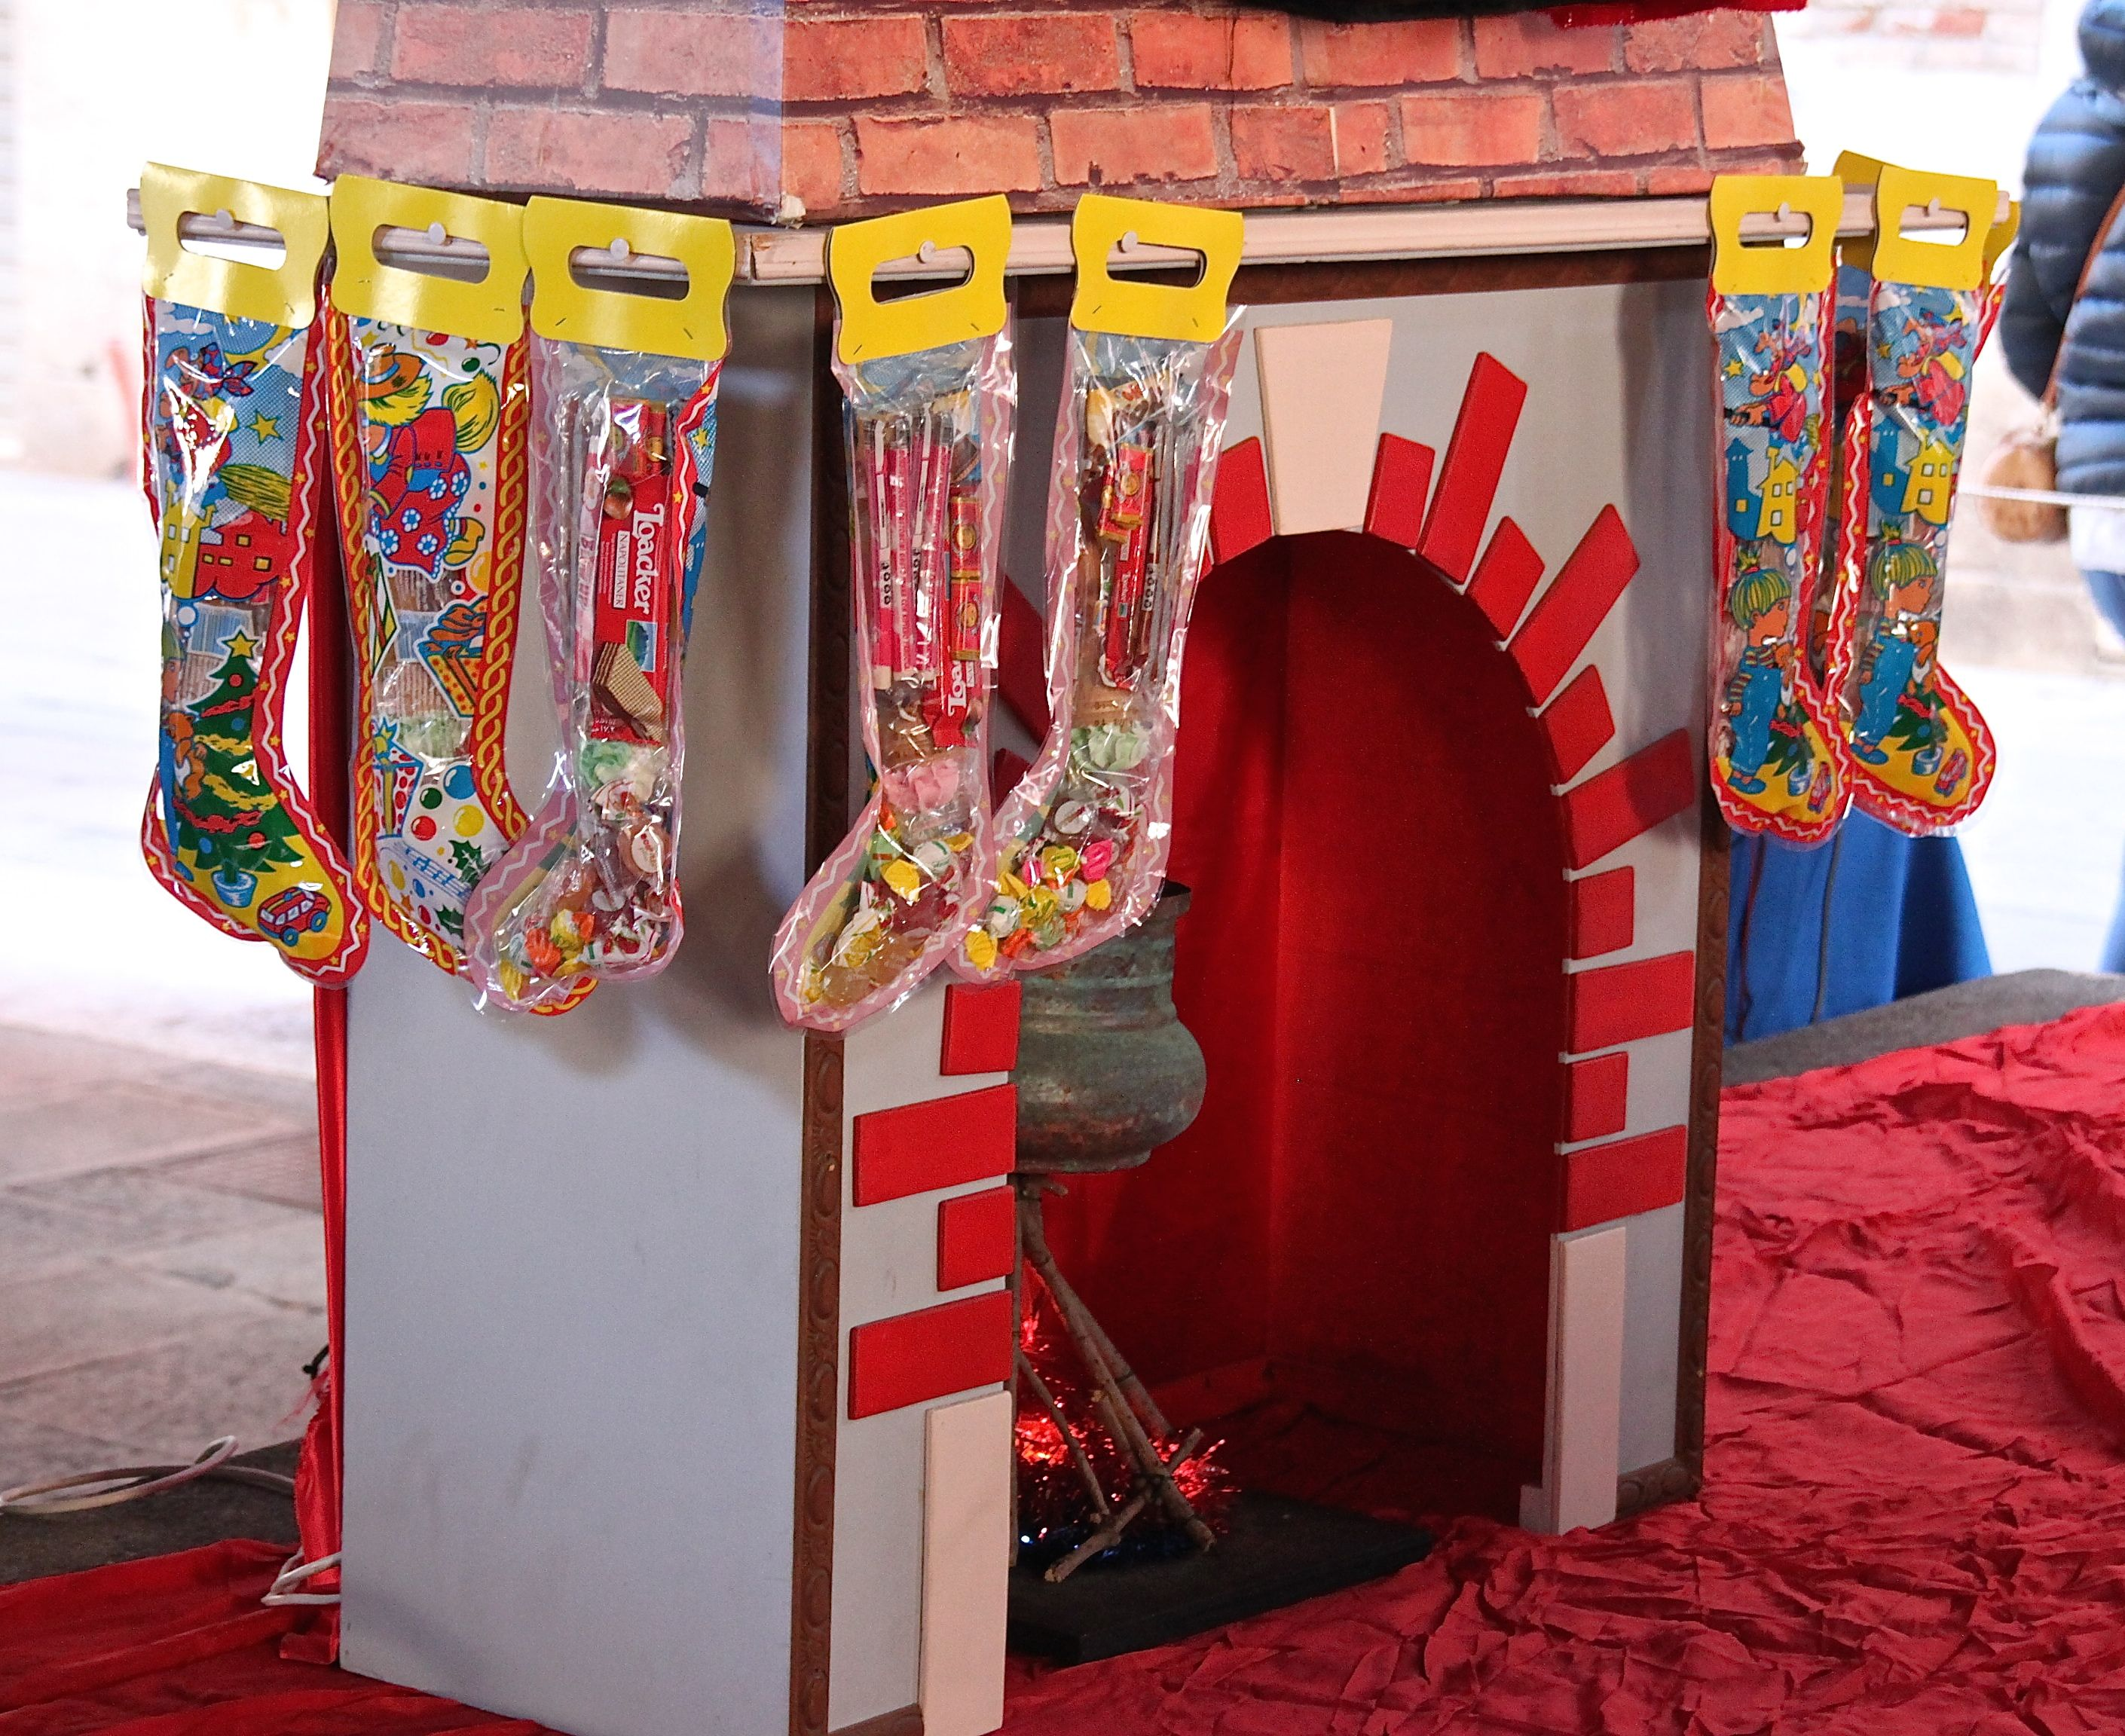 A chimney with stockings filled with sweets